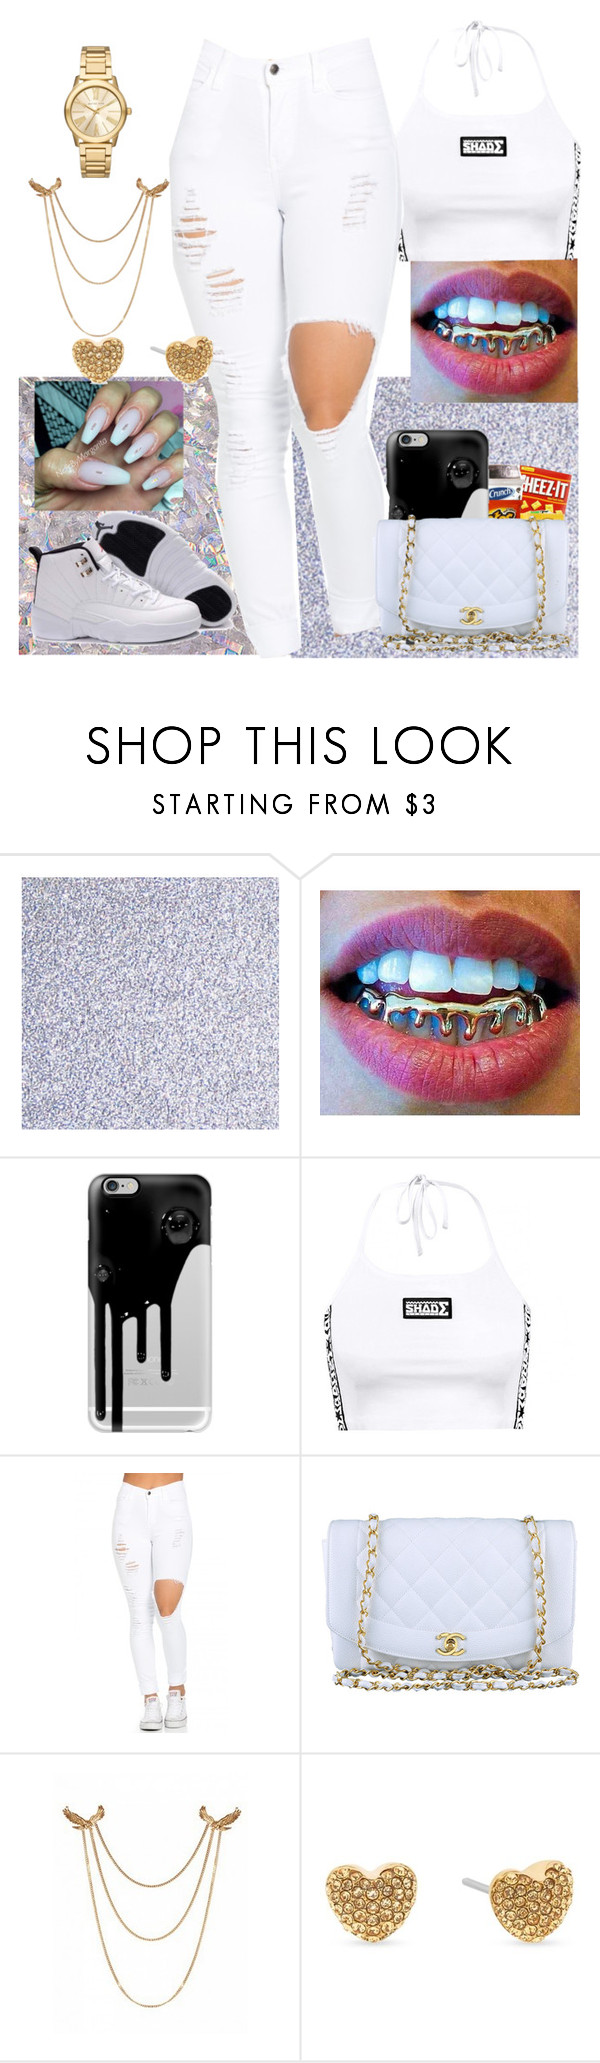 """Poppin on my all white"" by bigdaddy-ni ❤ liked on Polyvore featuring Retrò, Casetify, Chanel and Michael Kors"